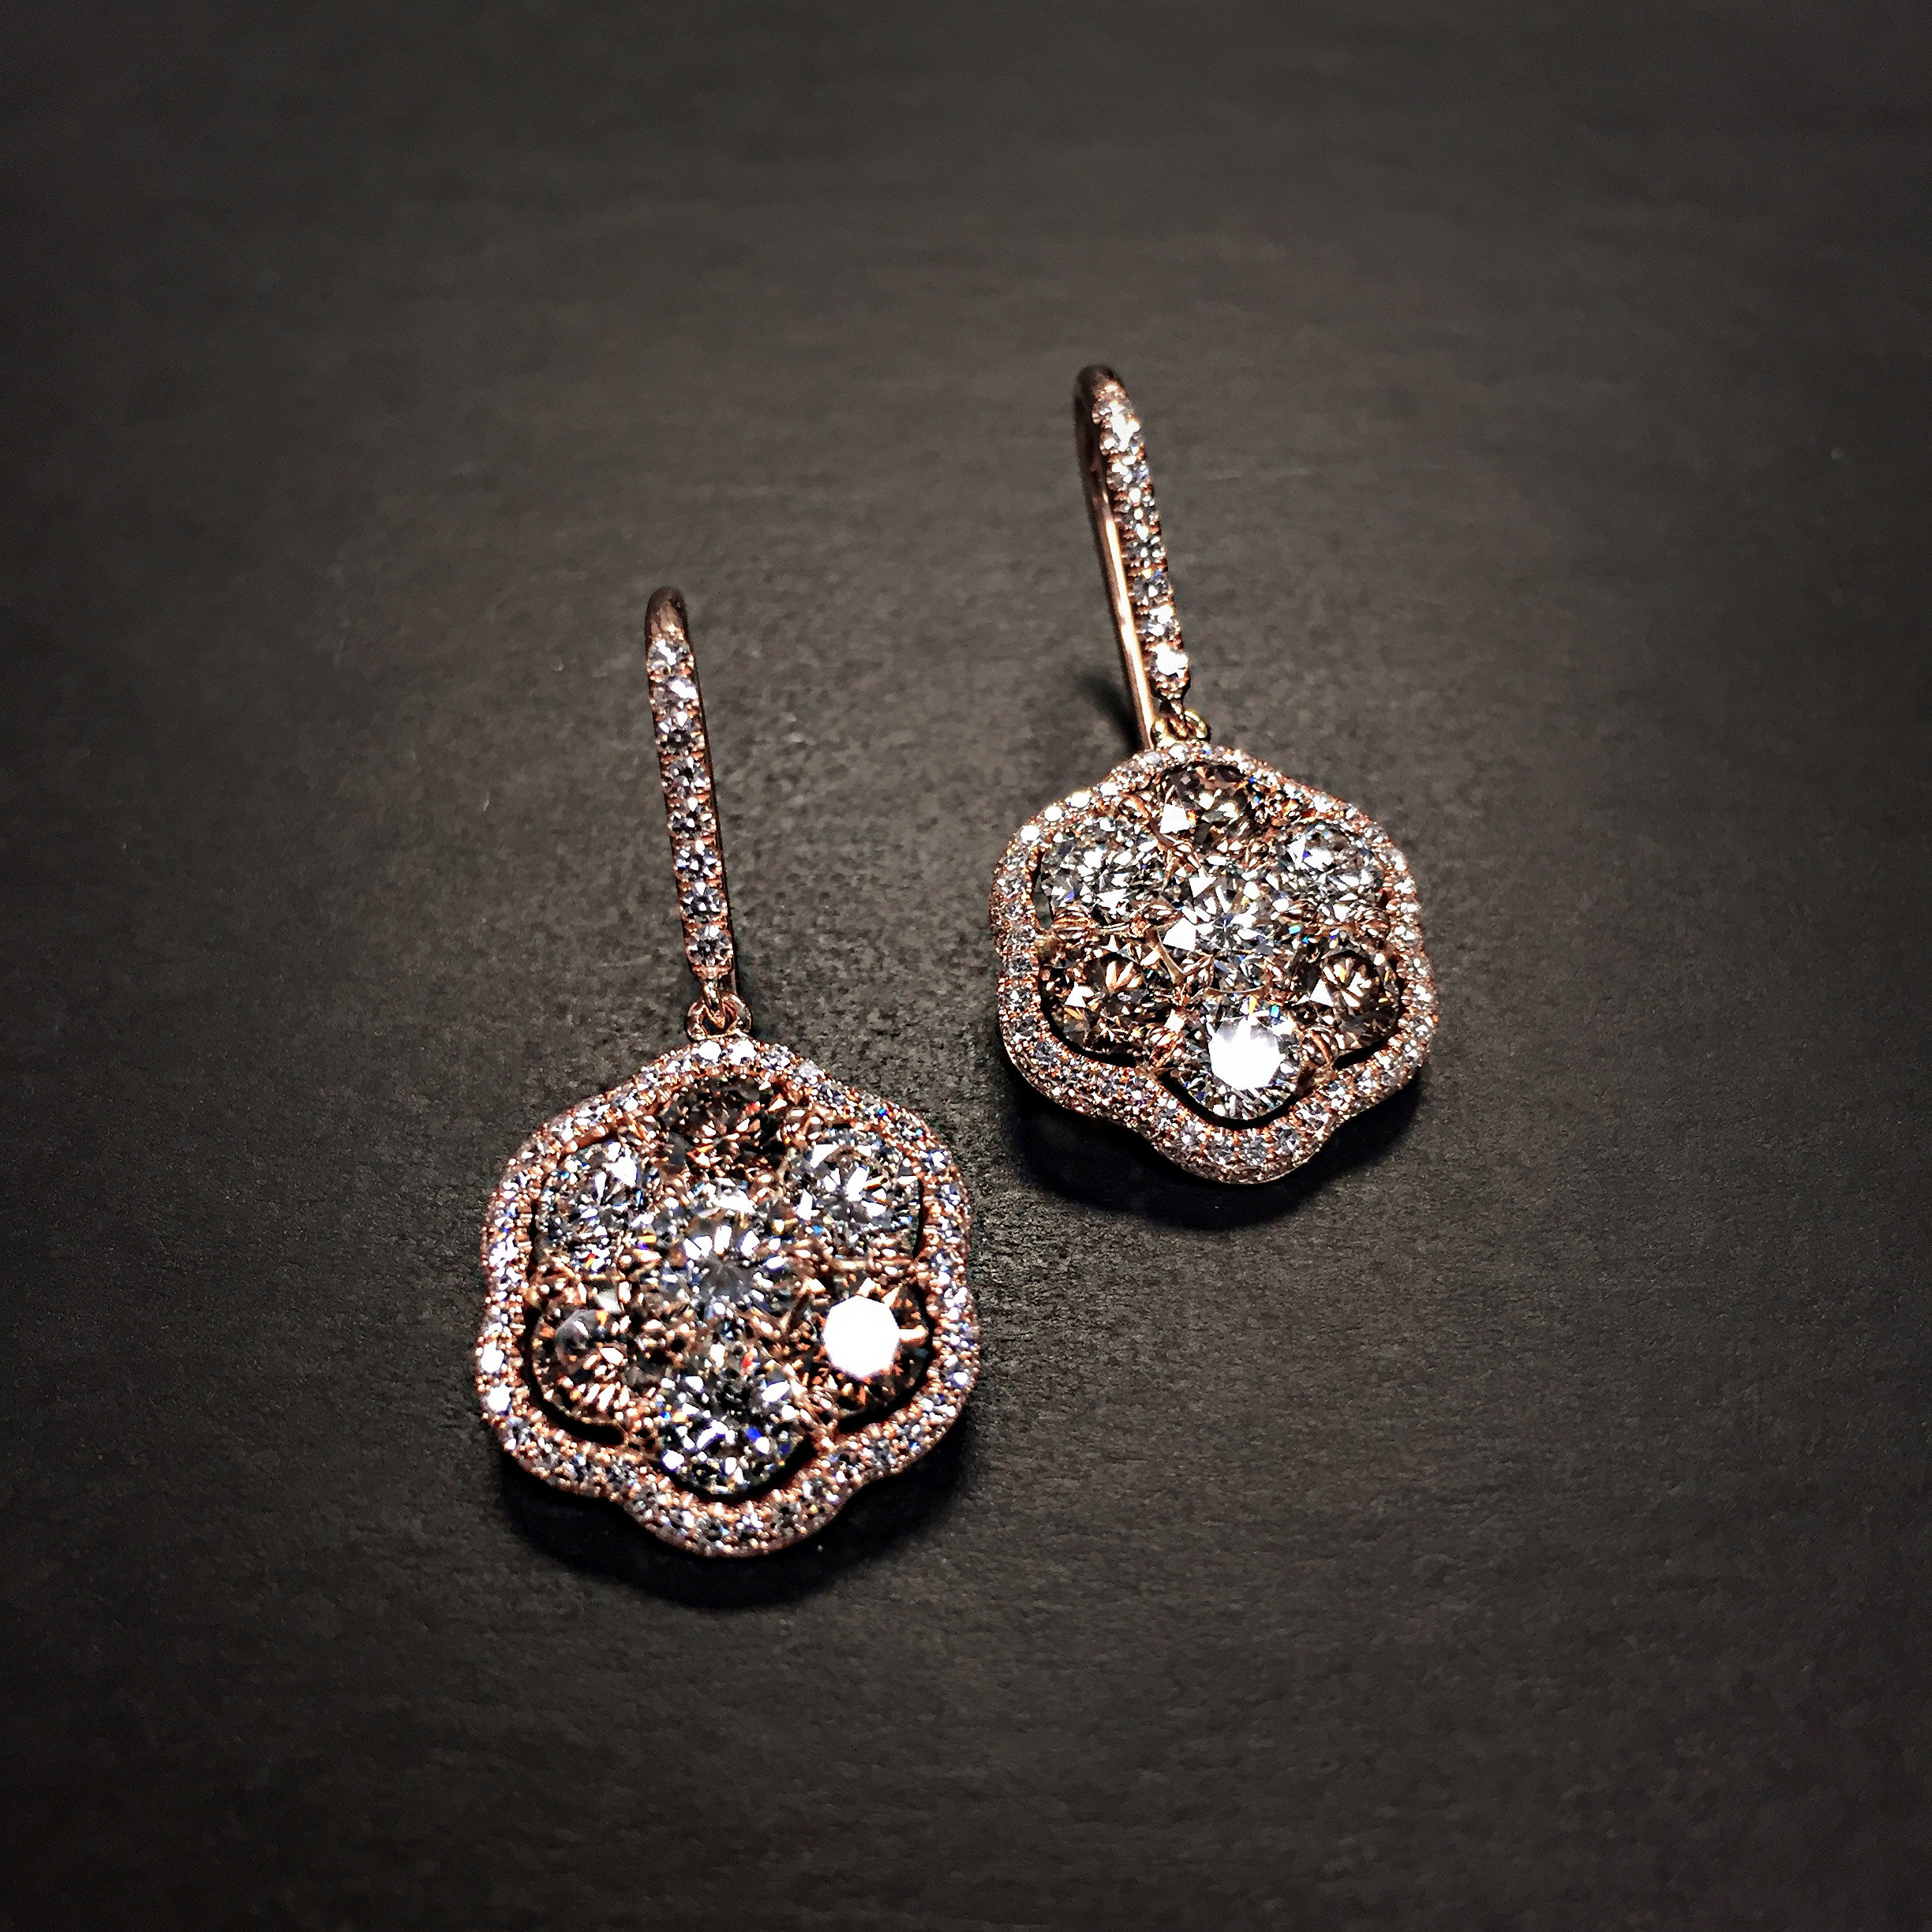 by pav earrings featuring rough pin in diamonds diamond drop with the micro champagne accented gold jewelry of fashion bubbles white